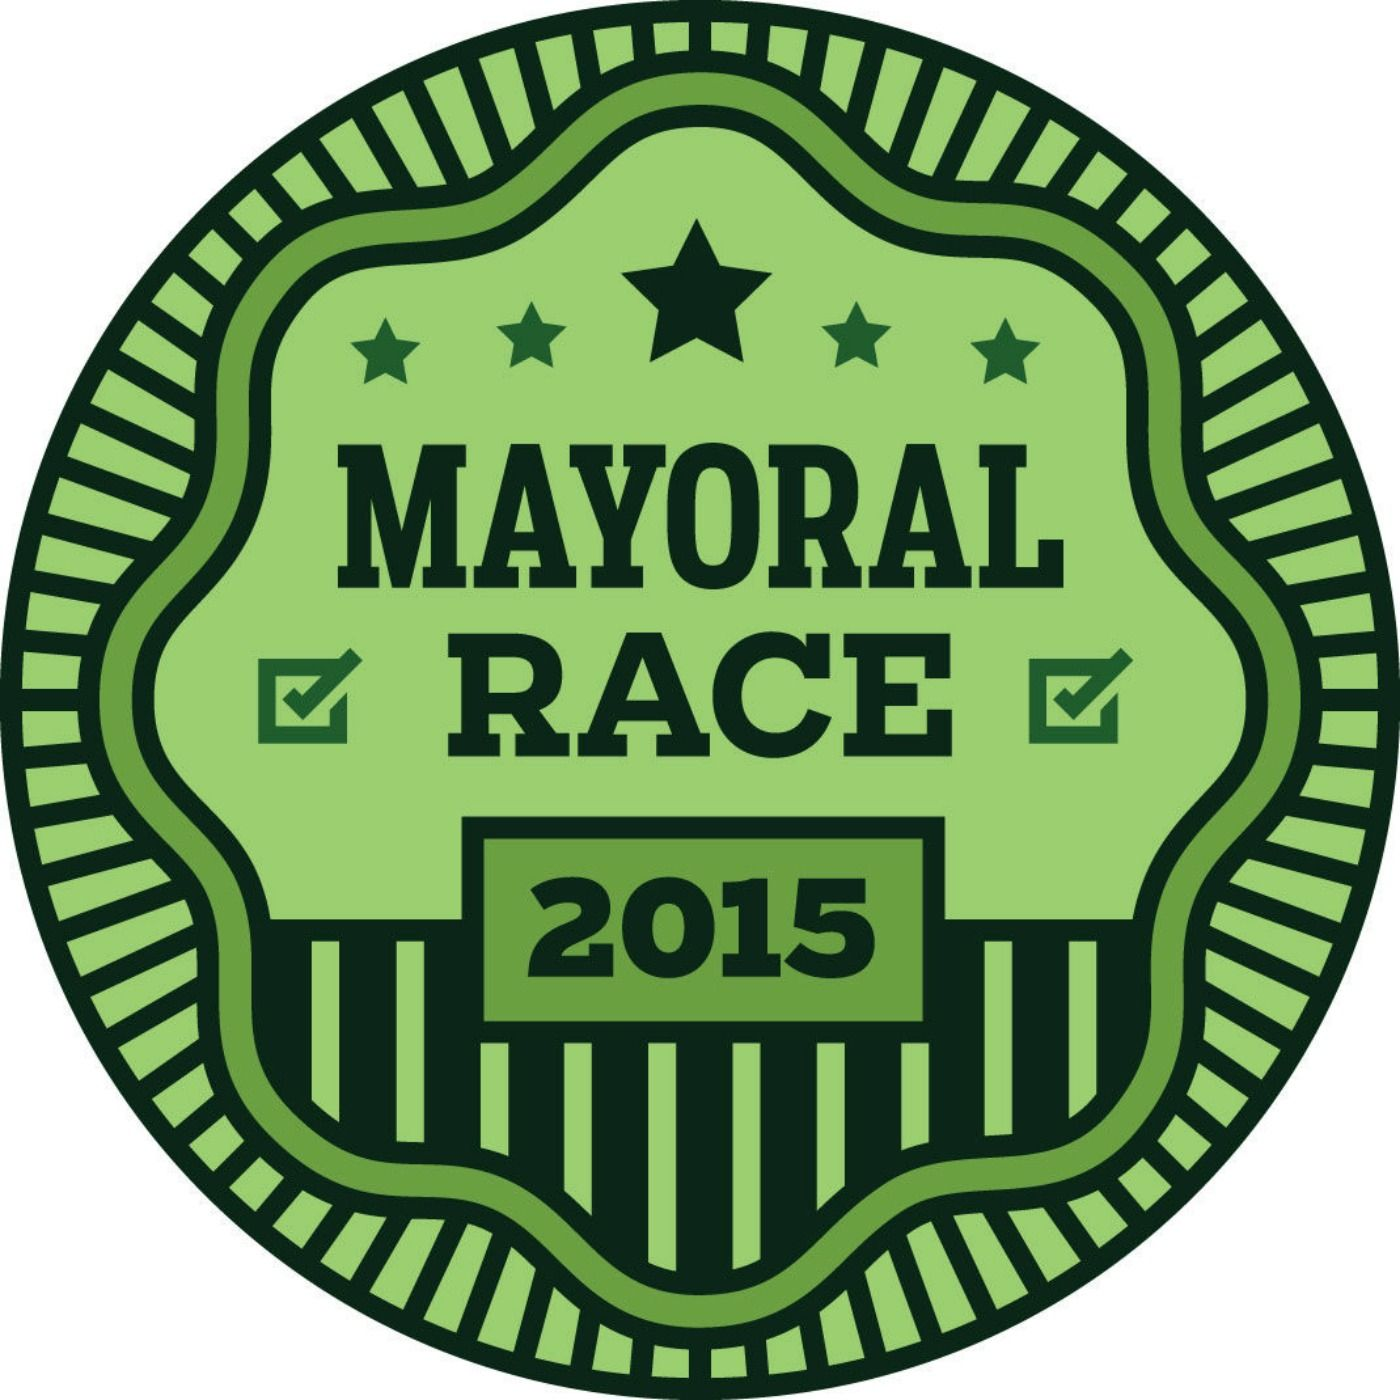 Madison mayor's race podcast